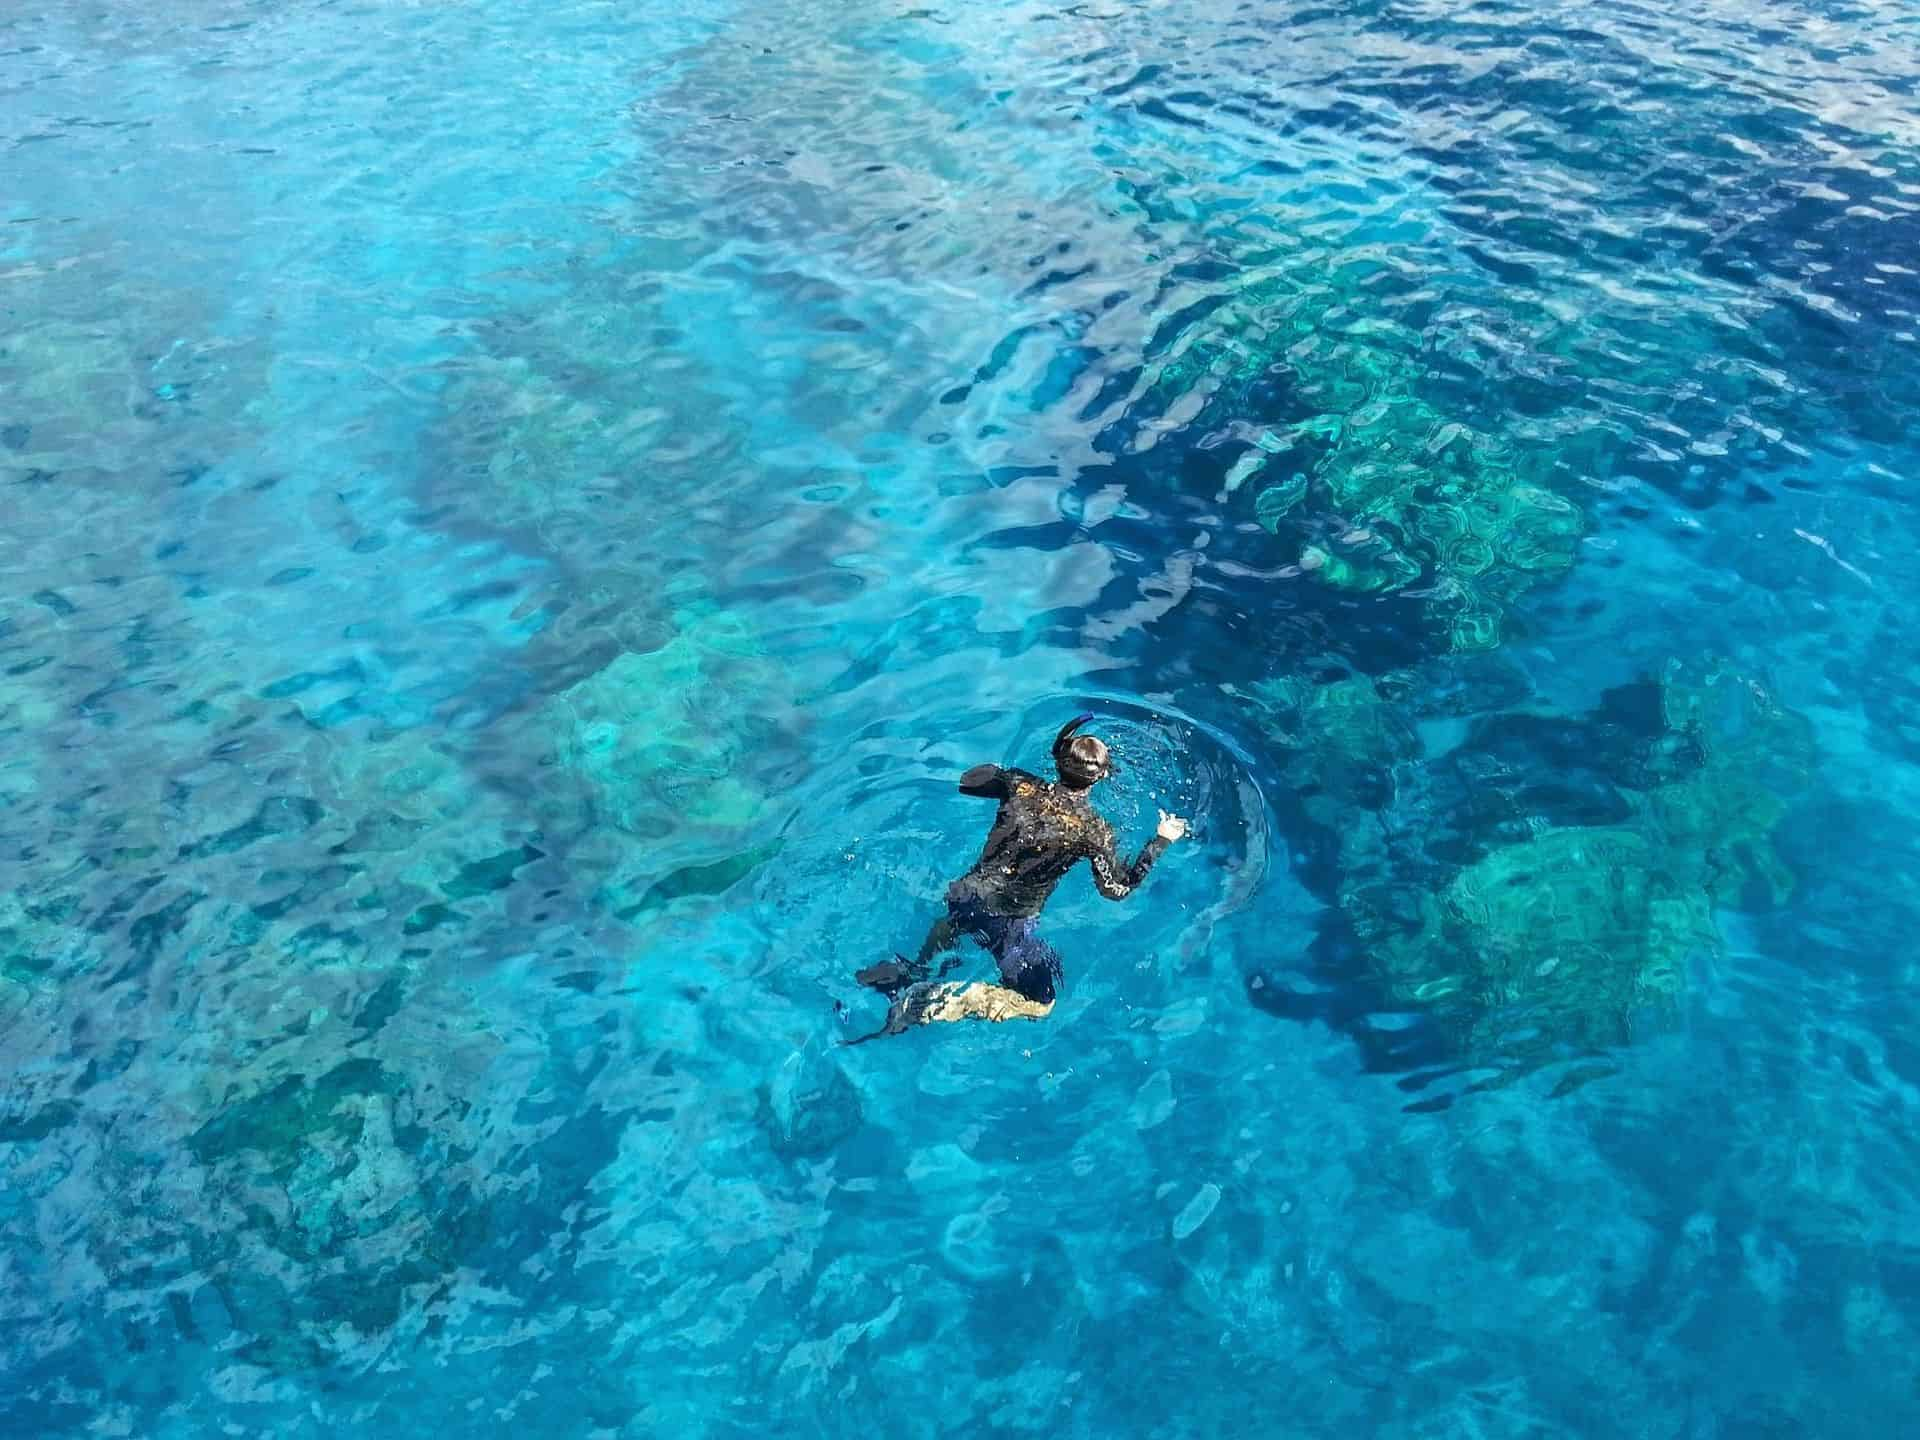 Snorkeling holiday - best tips and tricks to have fun and stay safe